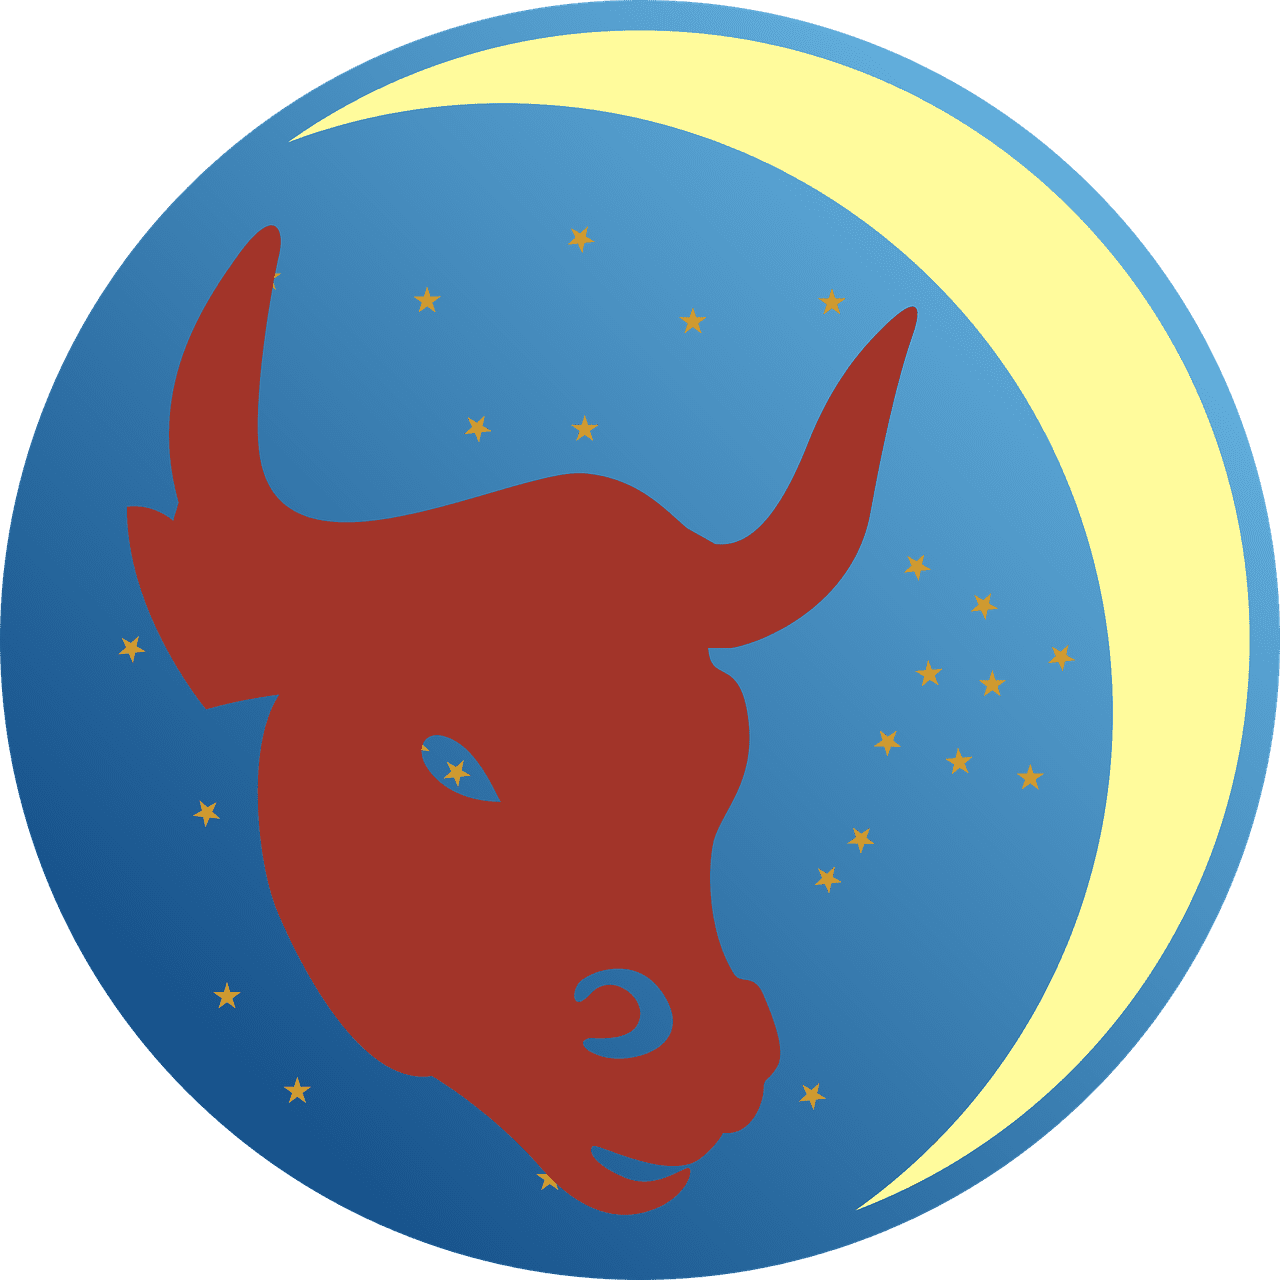 A depiction of the Taurus star sign   Photo: Pixabay/13smok